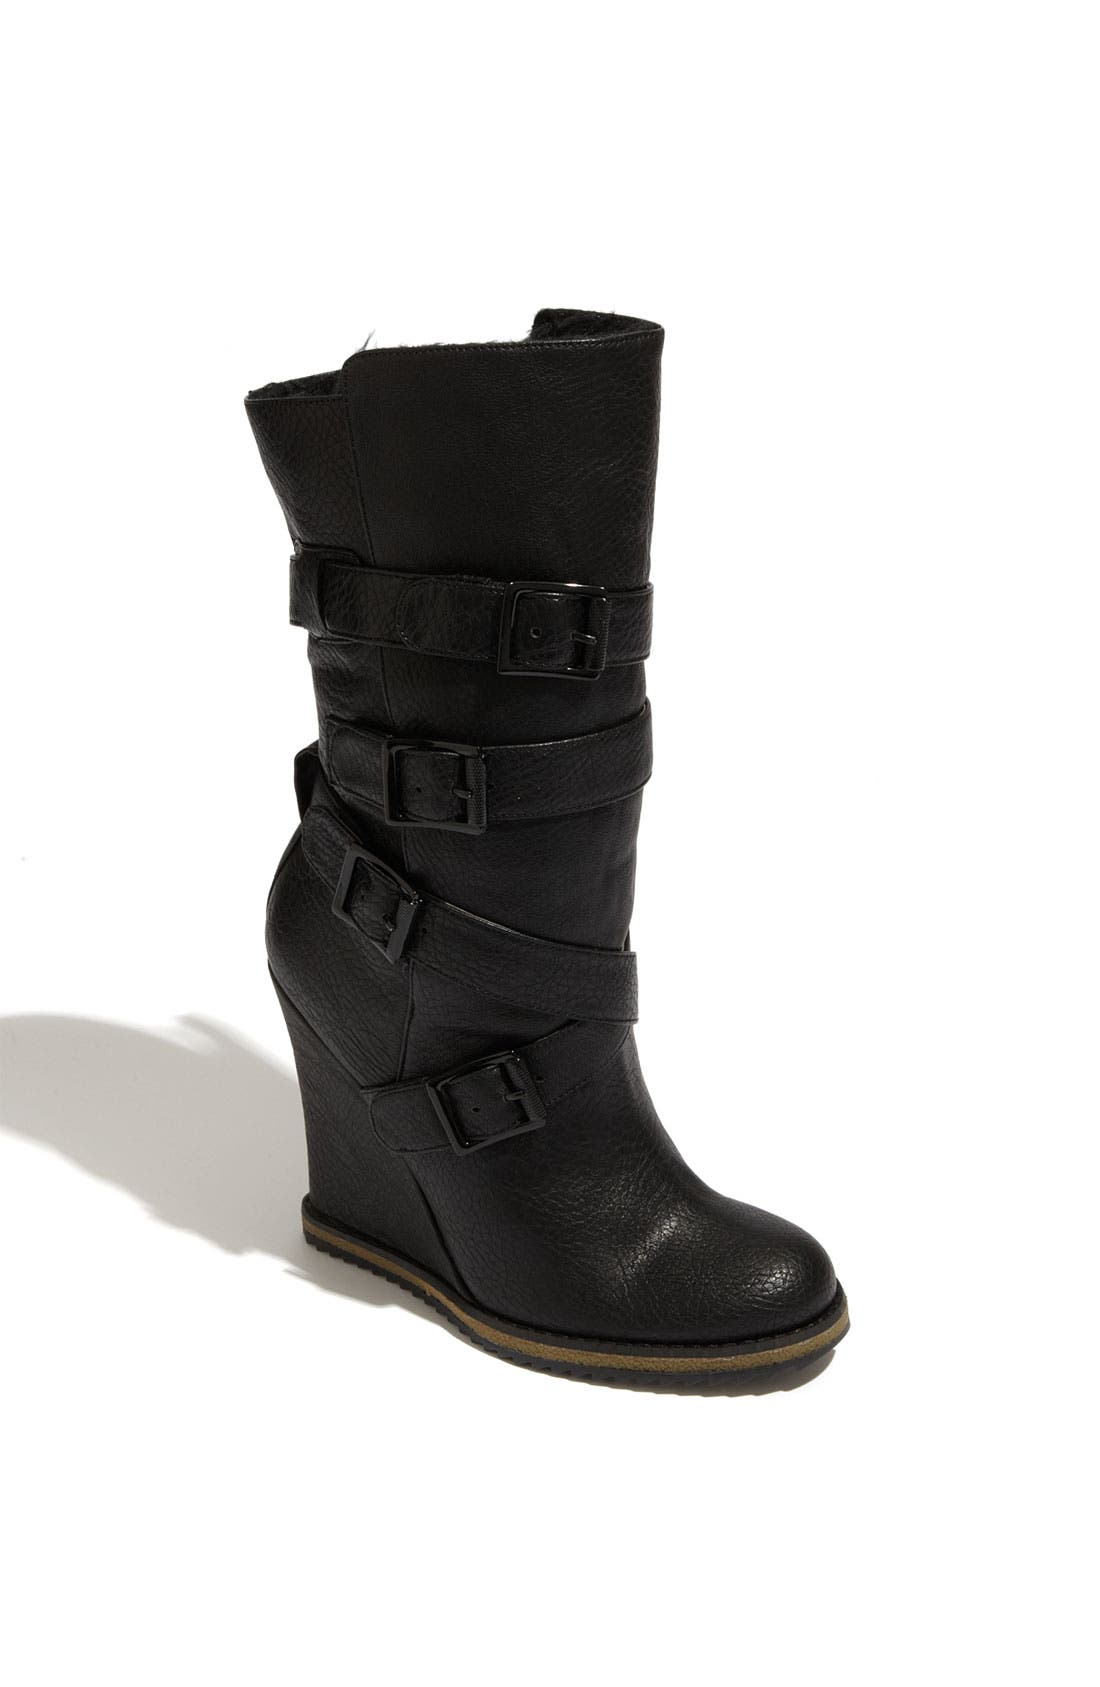 Alternate Image 1 Selected - Sam Edelman 'Teresa' Boot